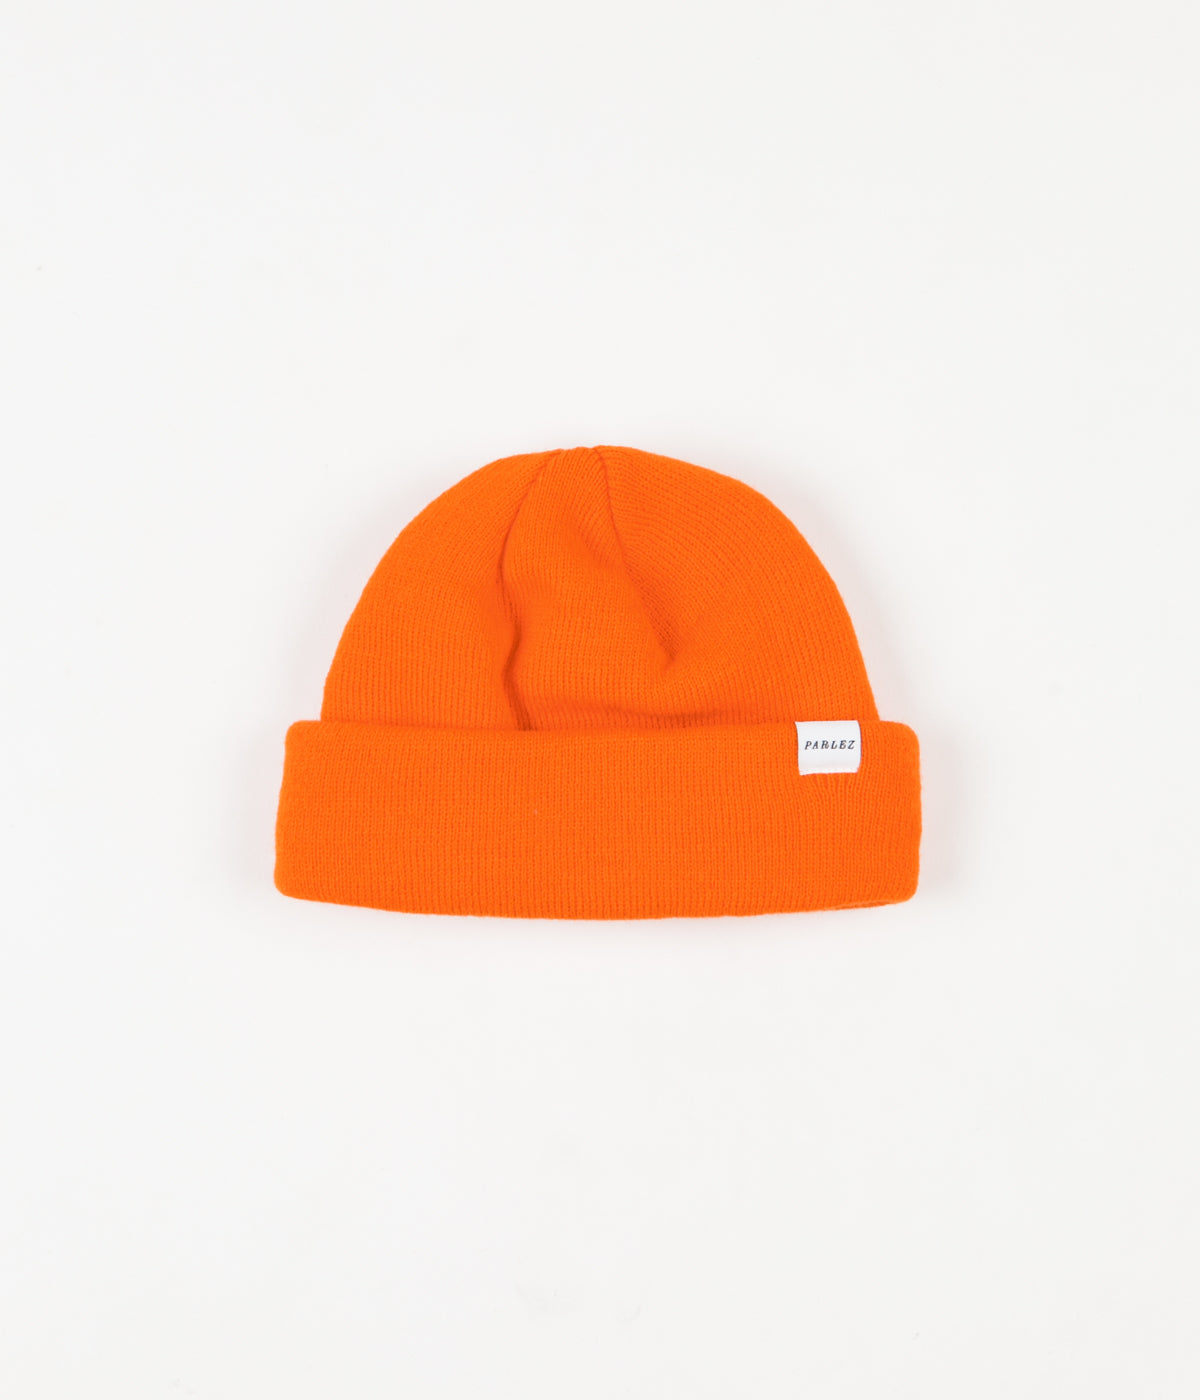 Parlez Flatholm Beanie - Orange